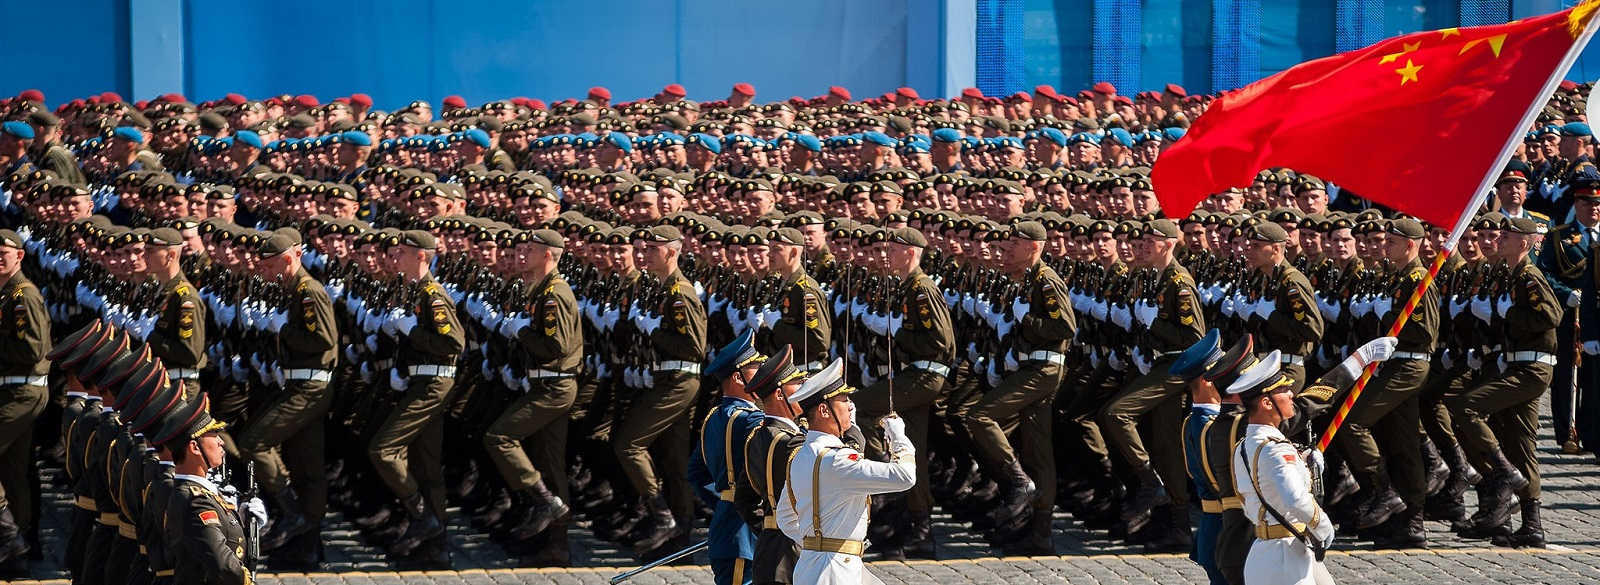 The PLA's 'Battalion of Honour' marched for the first time in Moscow's Victory Day parade in 2015 (Photo: Flickr/Dmitriy Fomin)